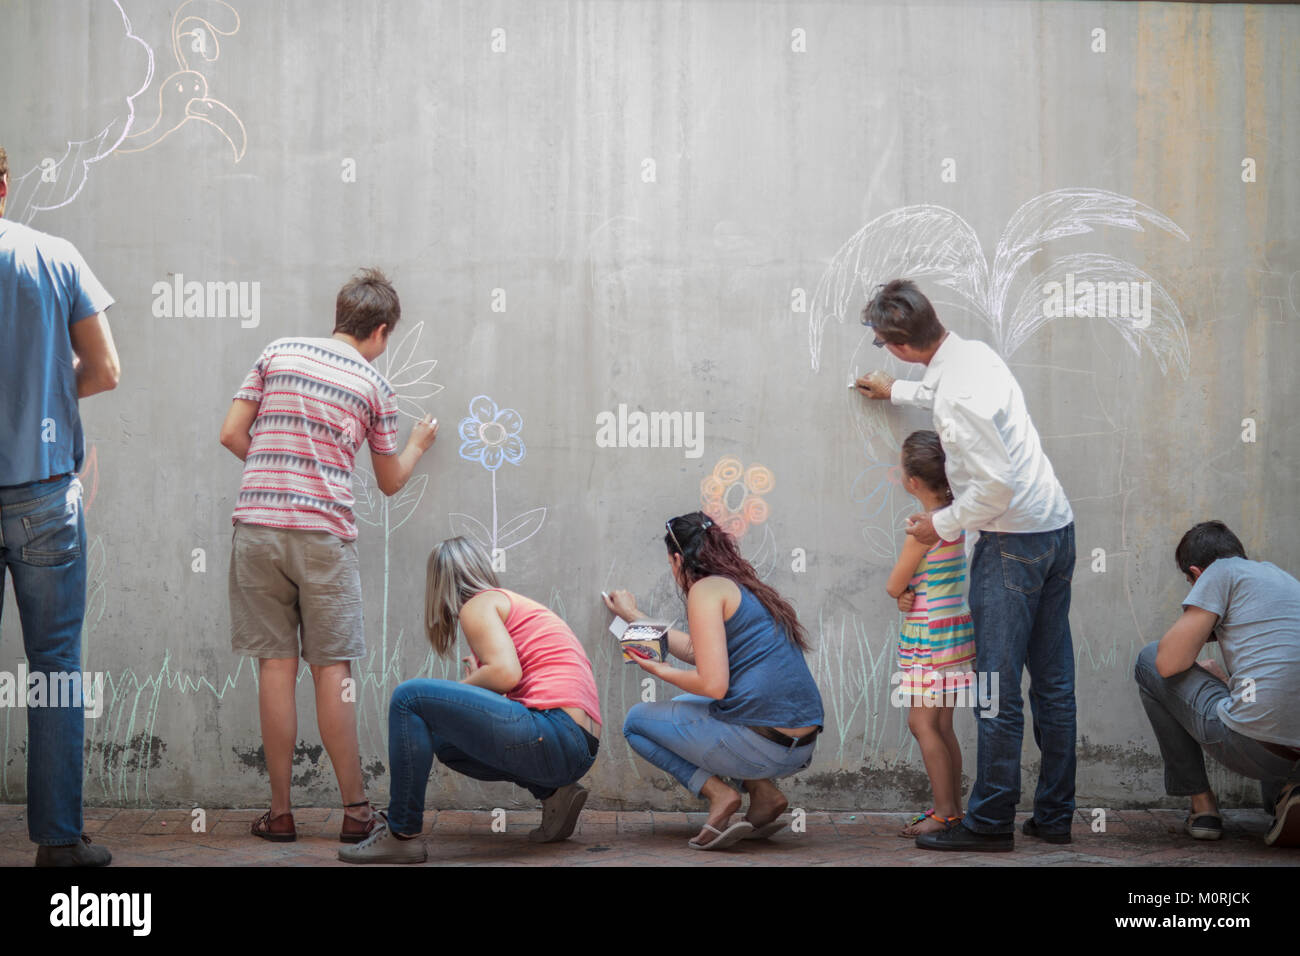 People drawing colourful pictures with chalk on a concrete wall - Stock Image